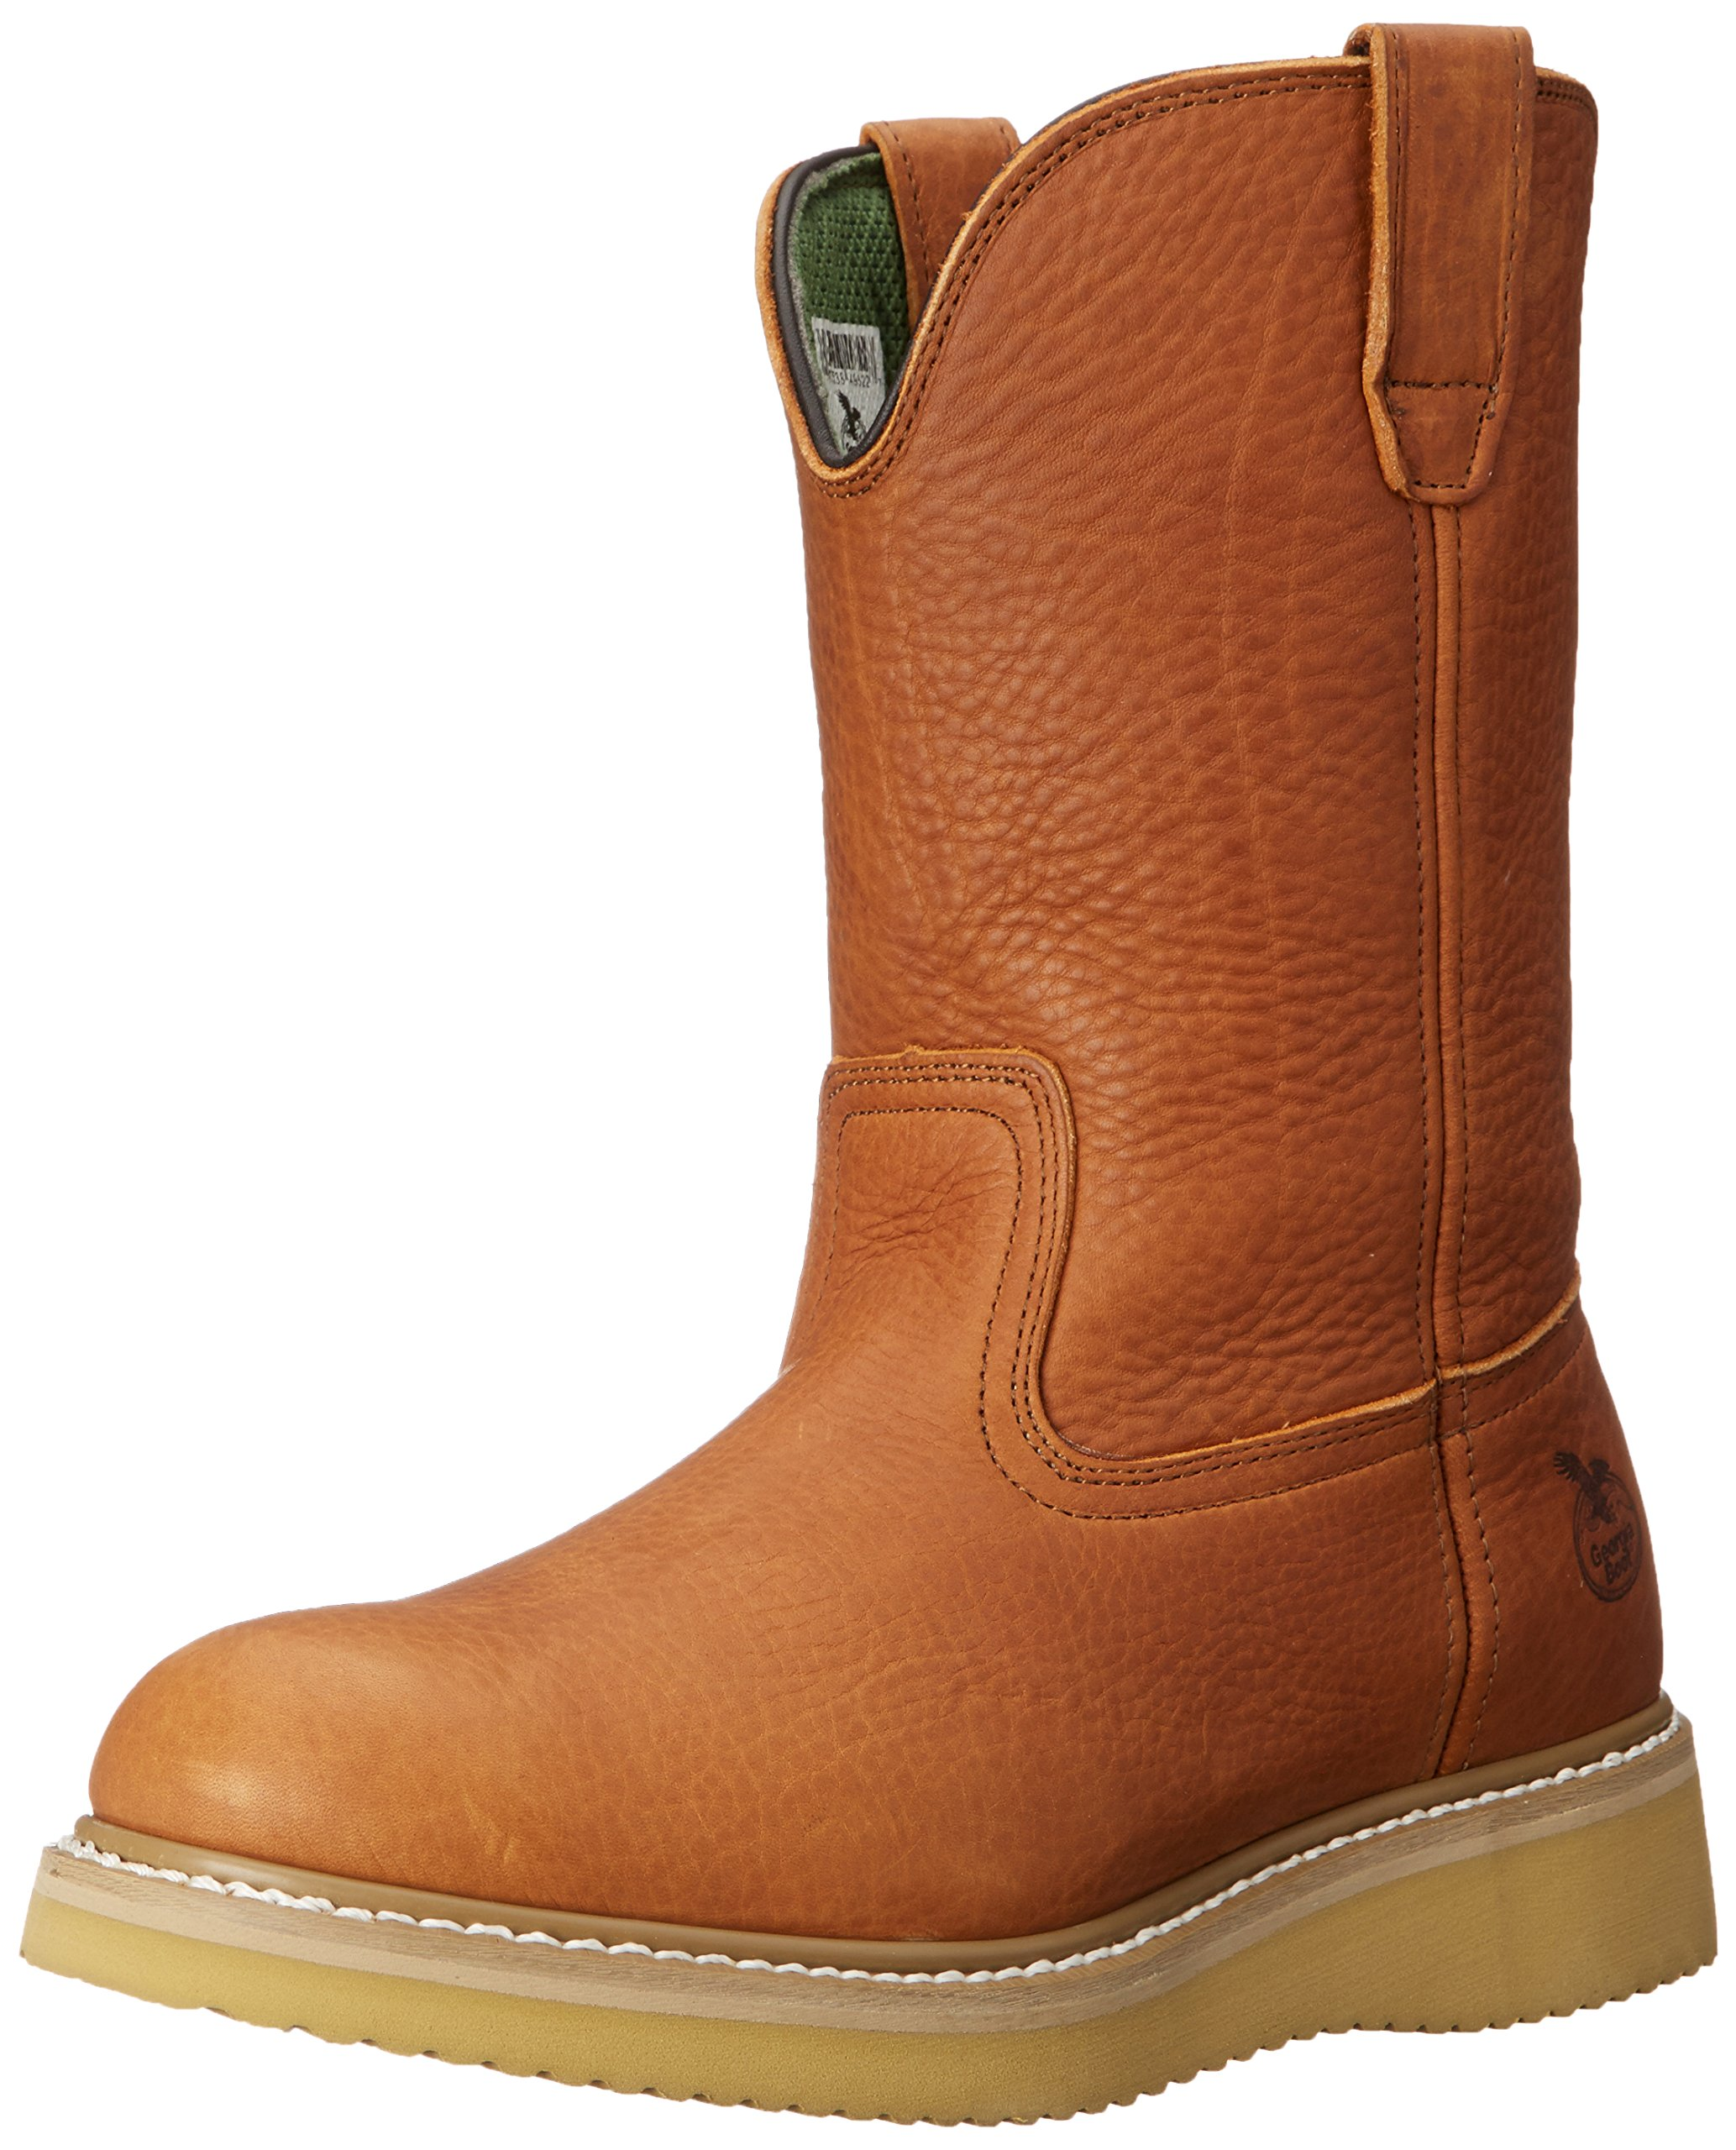 Georgia Boot Men's 12'' Wedge Wellington Work Boot,Barracuda Gold,8.5 W